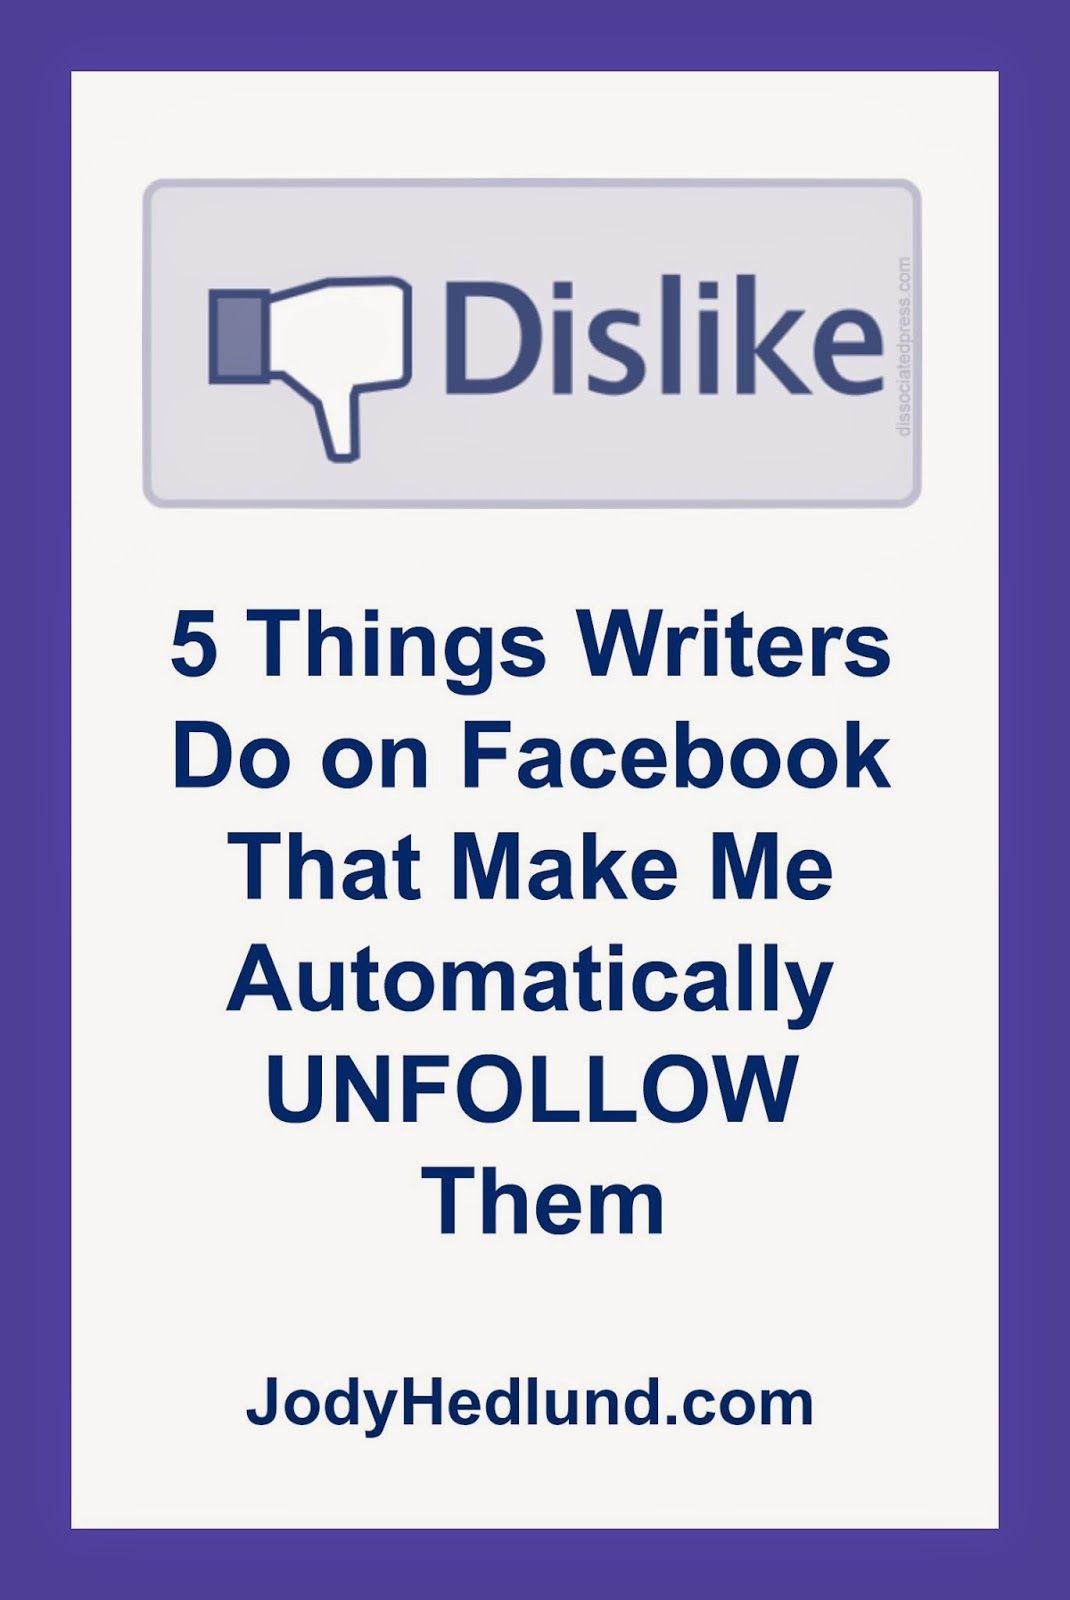 5 Things Writers Do on Facebook That Make Me Automatically